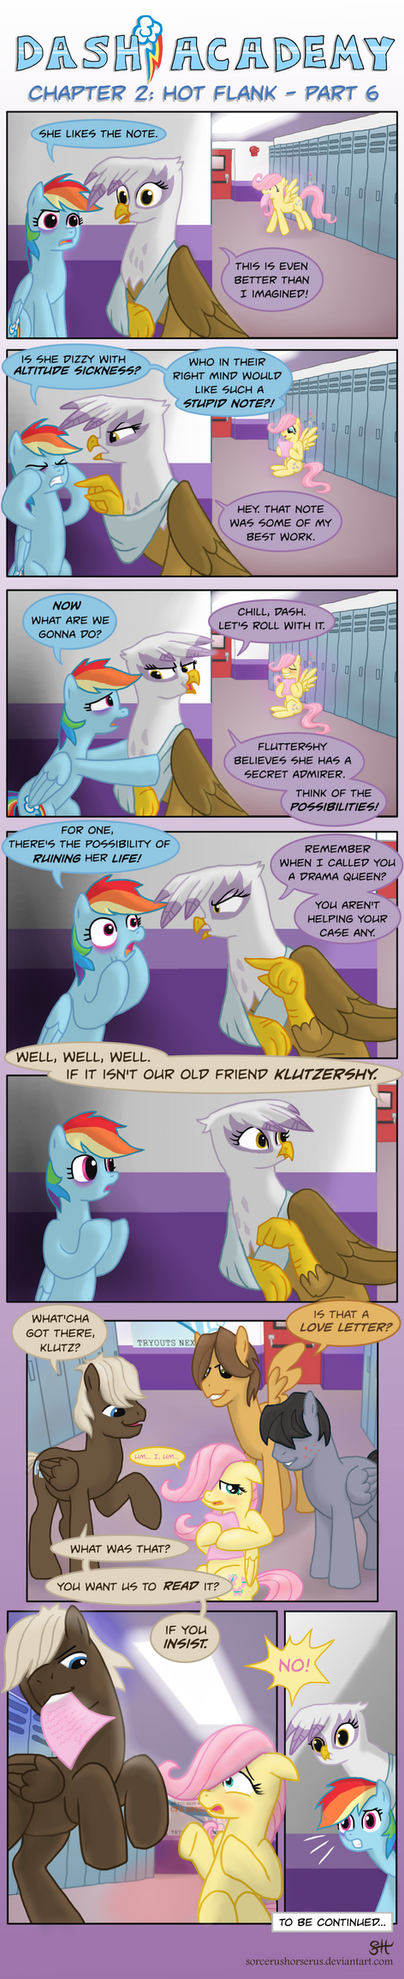 Dash Academy 2-Hot Flank Part6 by SorcerusHorserus